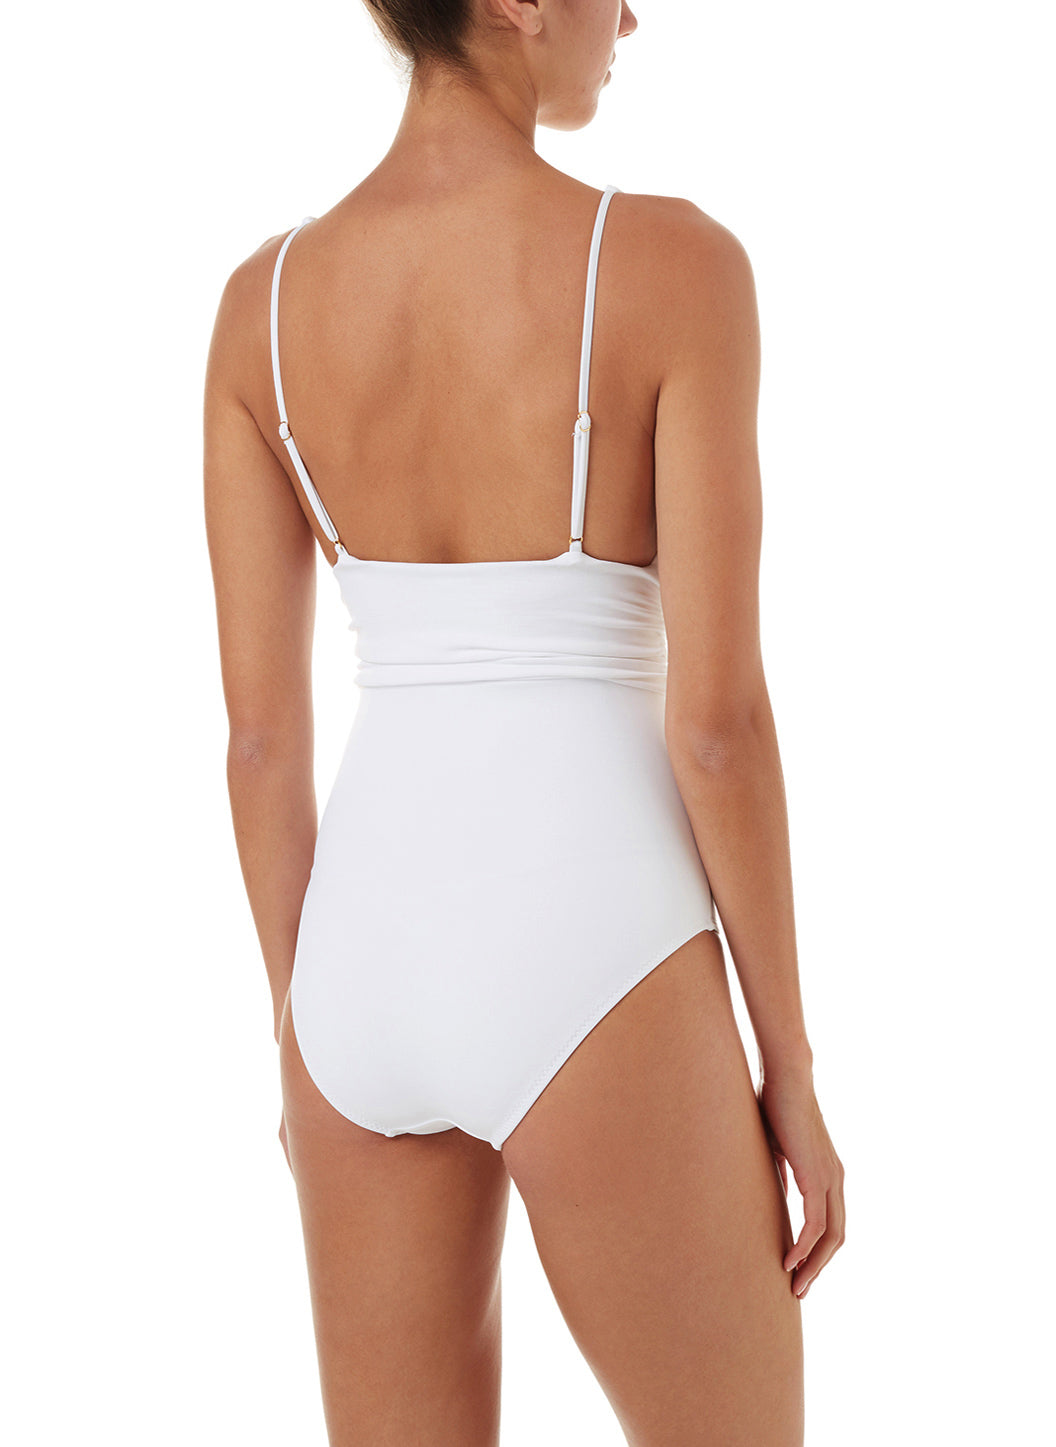 d4651f9e63656 Panarea White Classic Over The Shoulder Ruched One Piece Swimsuit ...